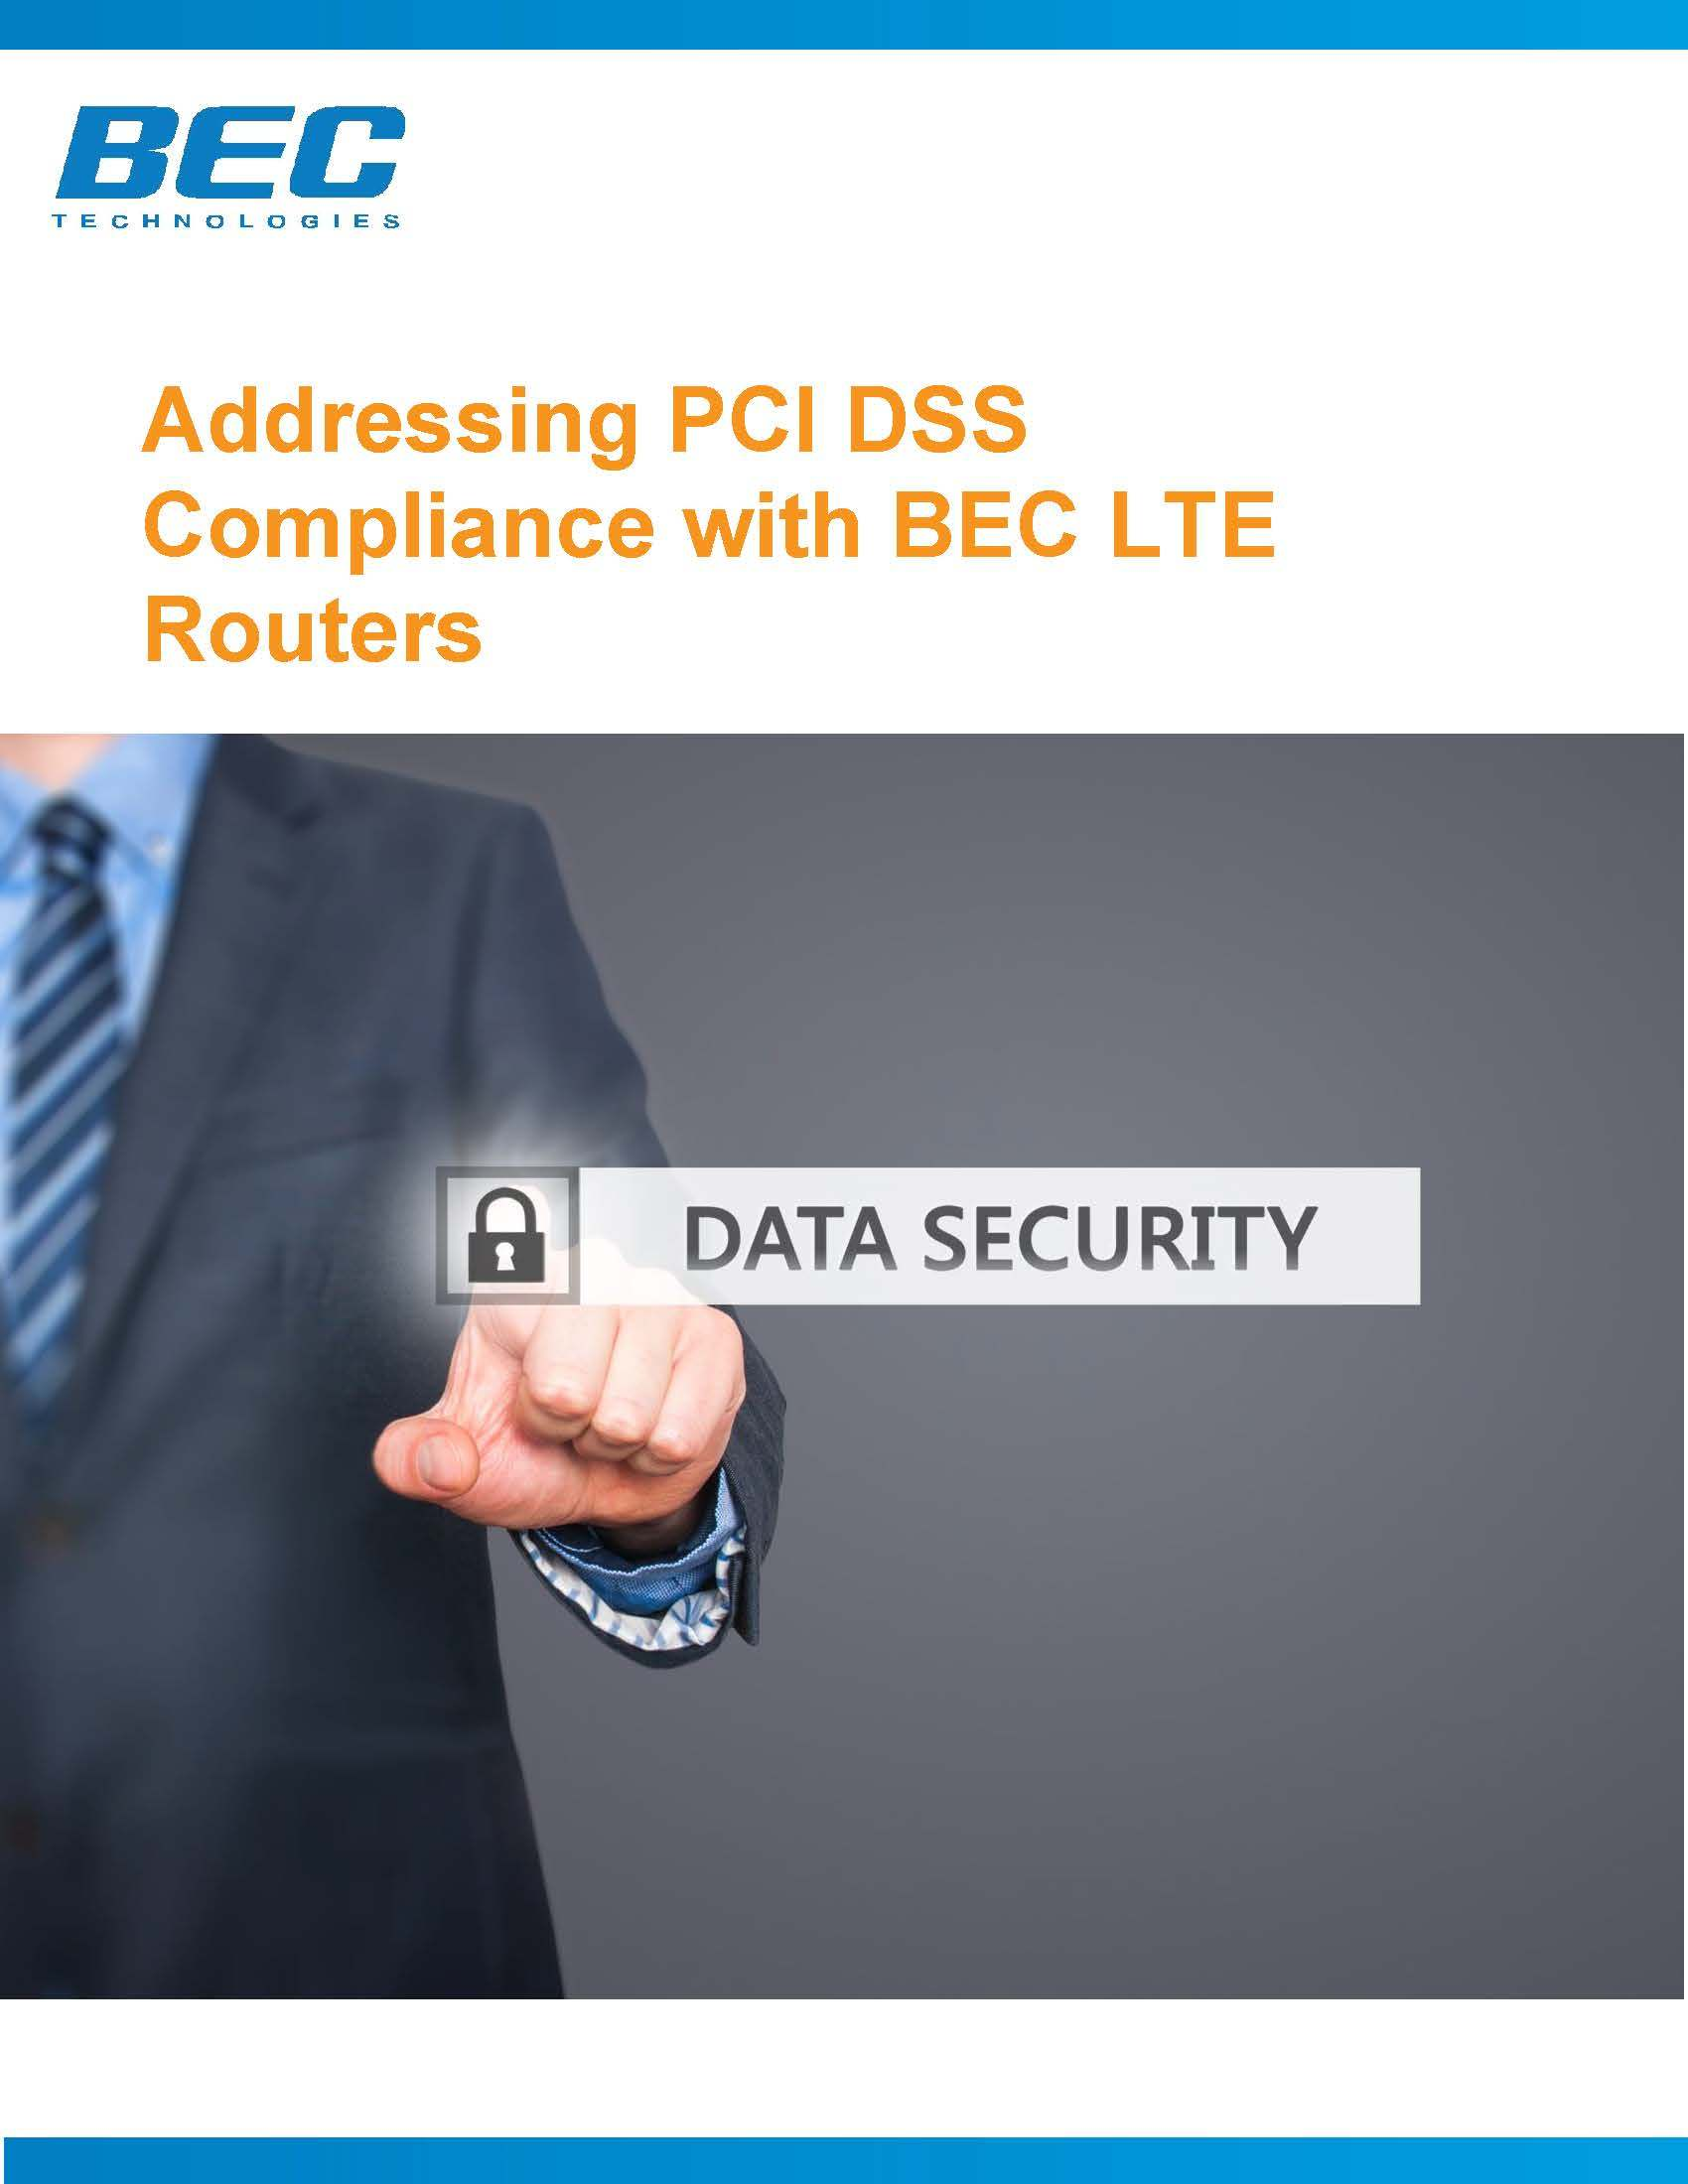 Addressing PCI DSS Compliance with BEC LTE Routers